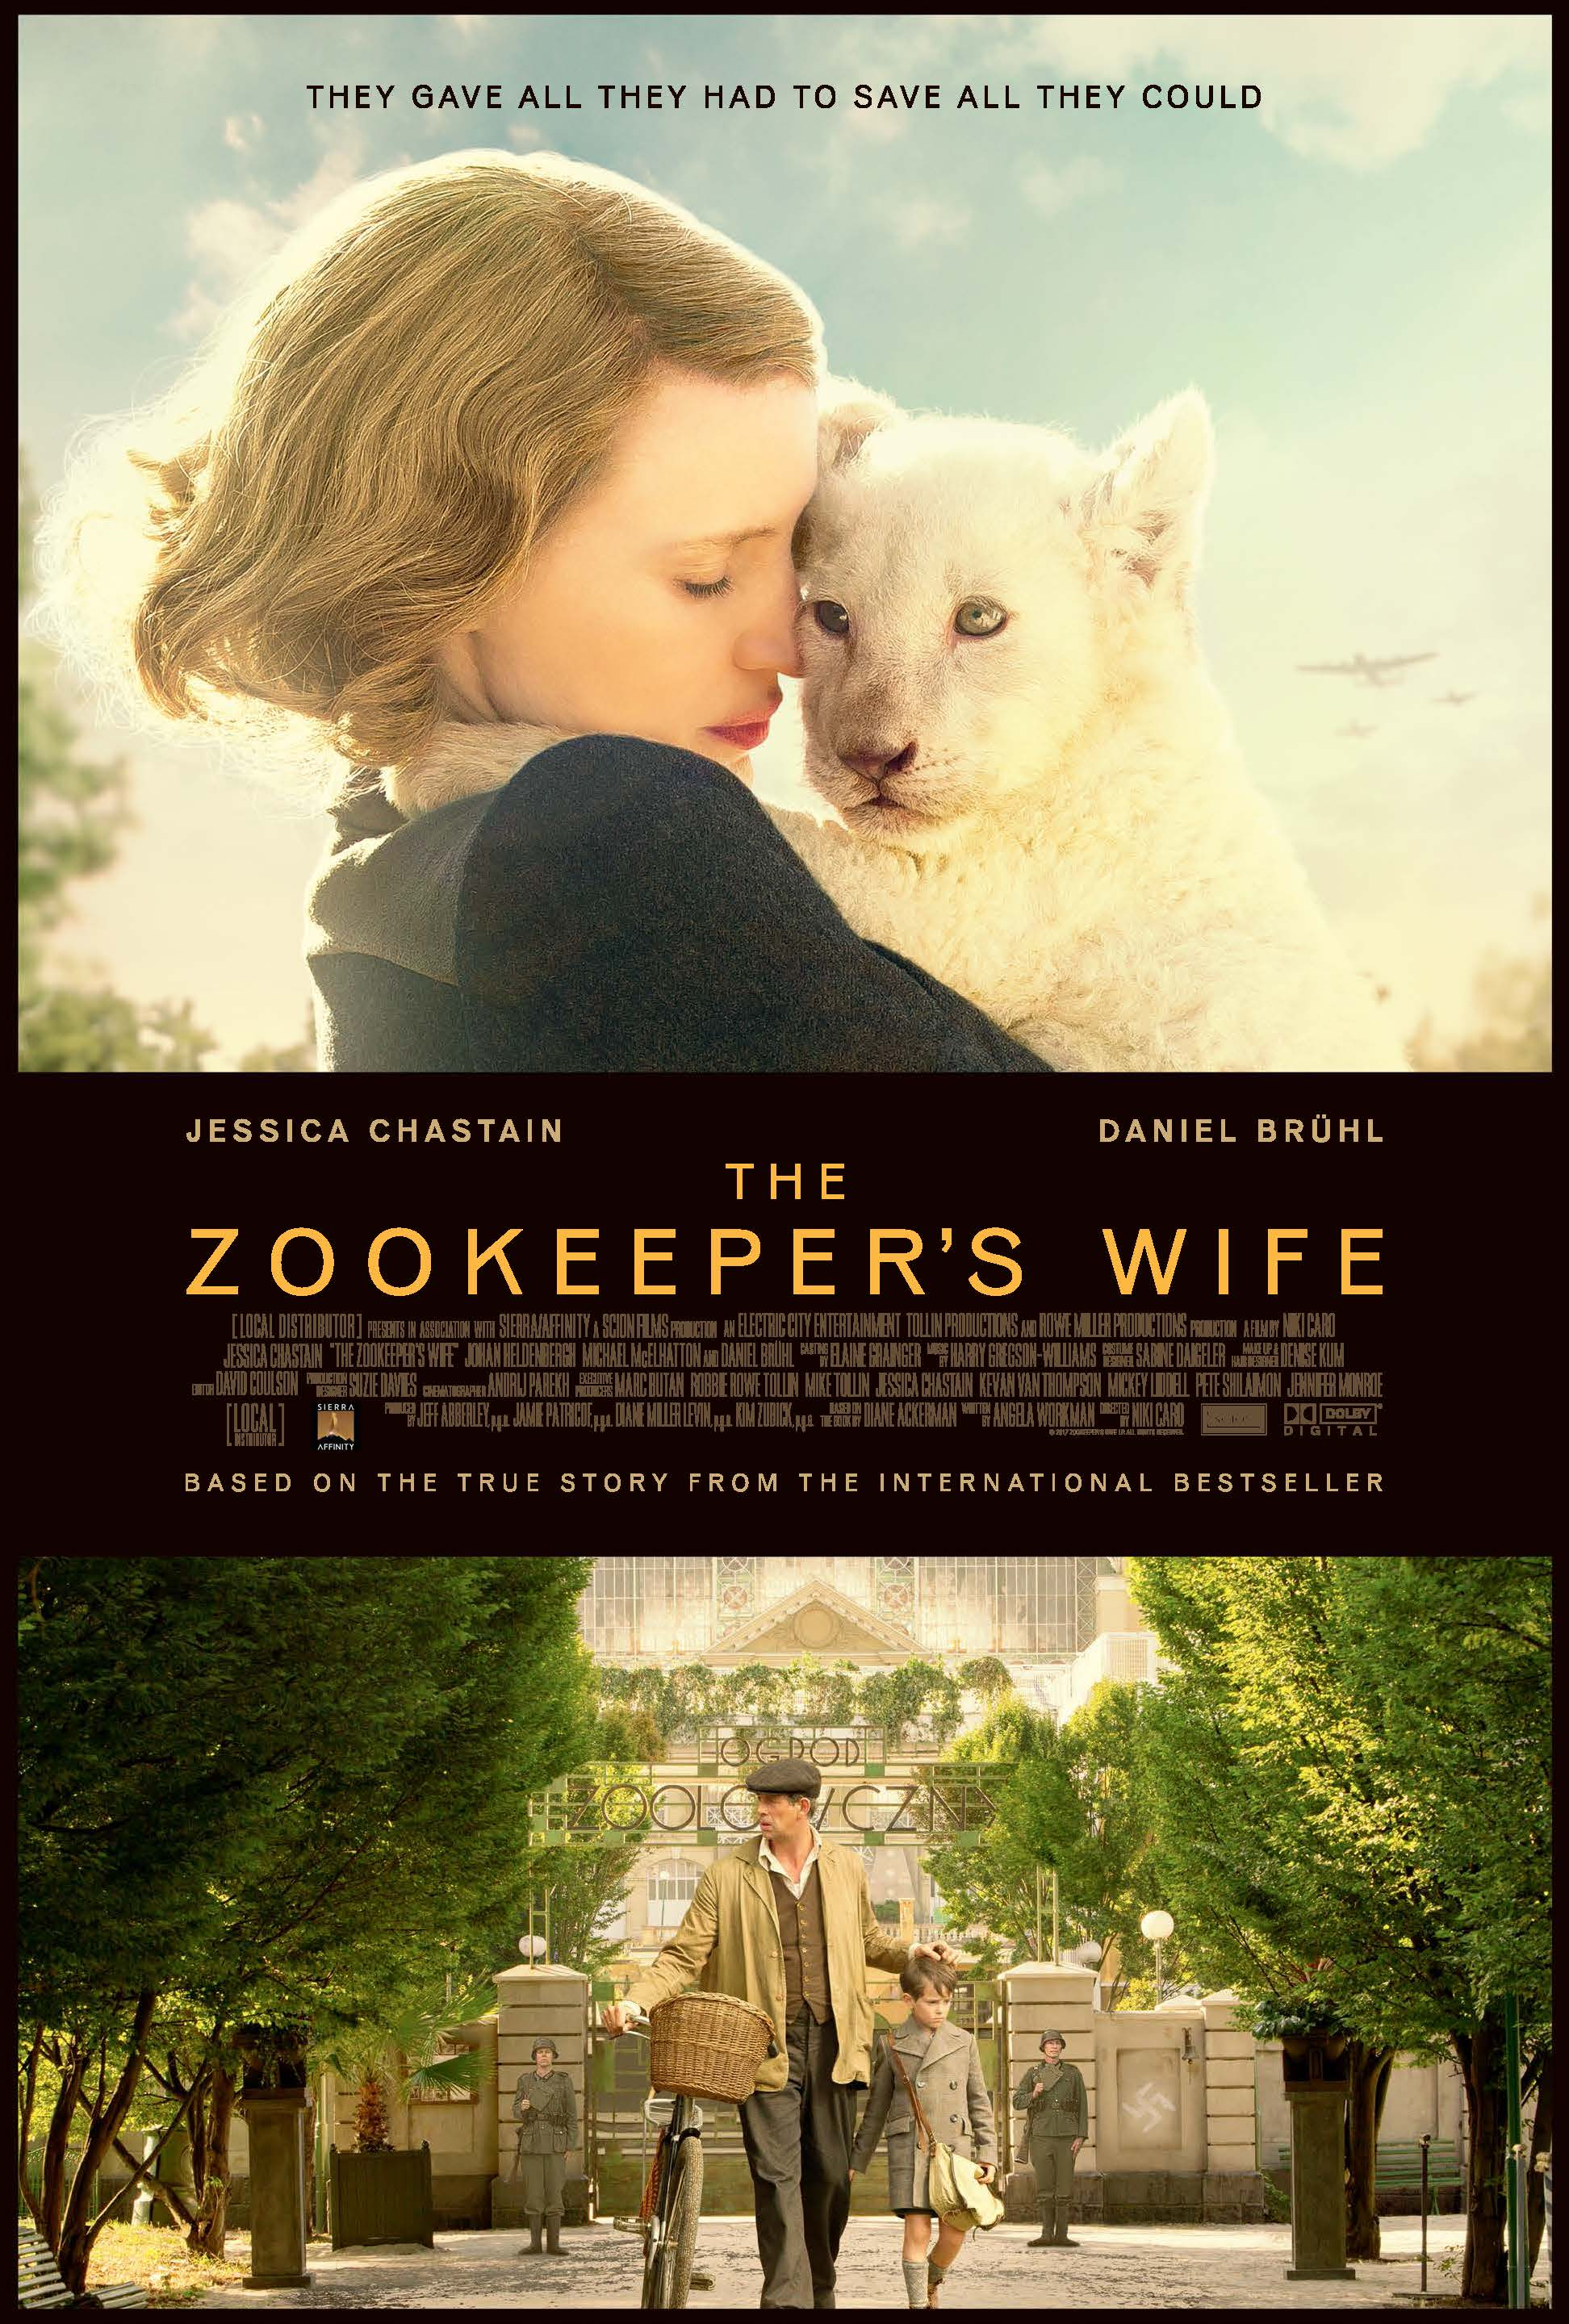 TheZookeepersWife_Poster_ForeignVersion